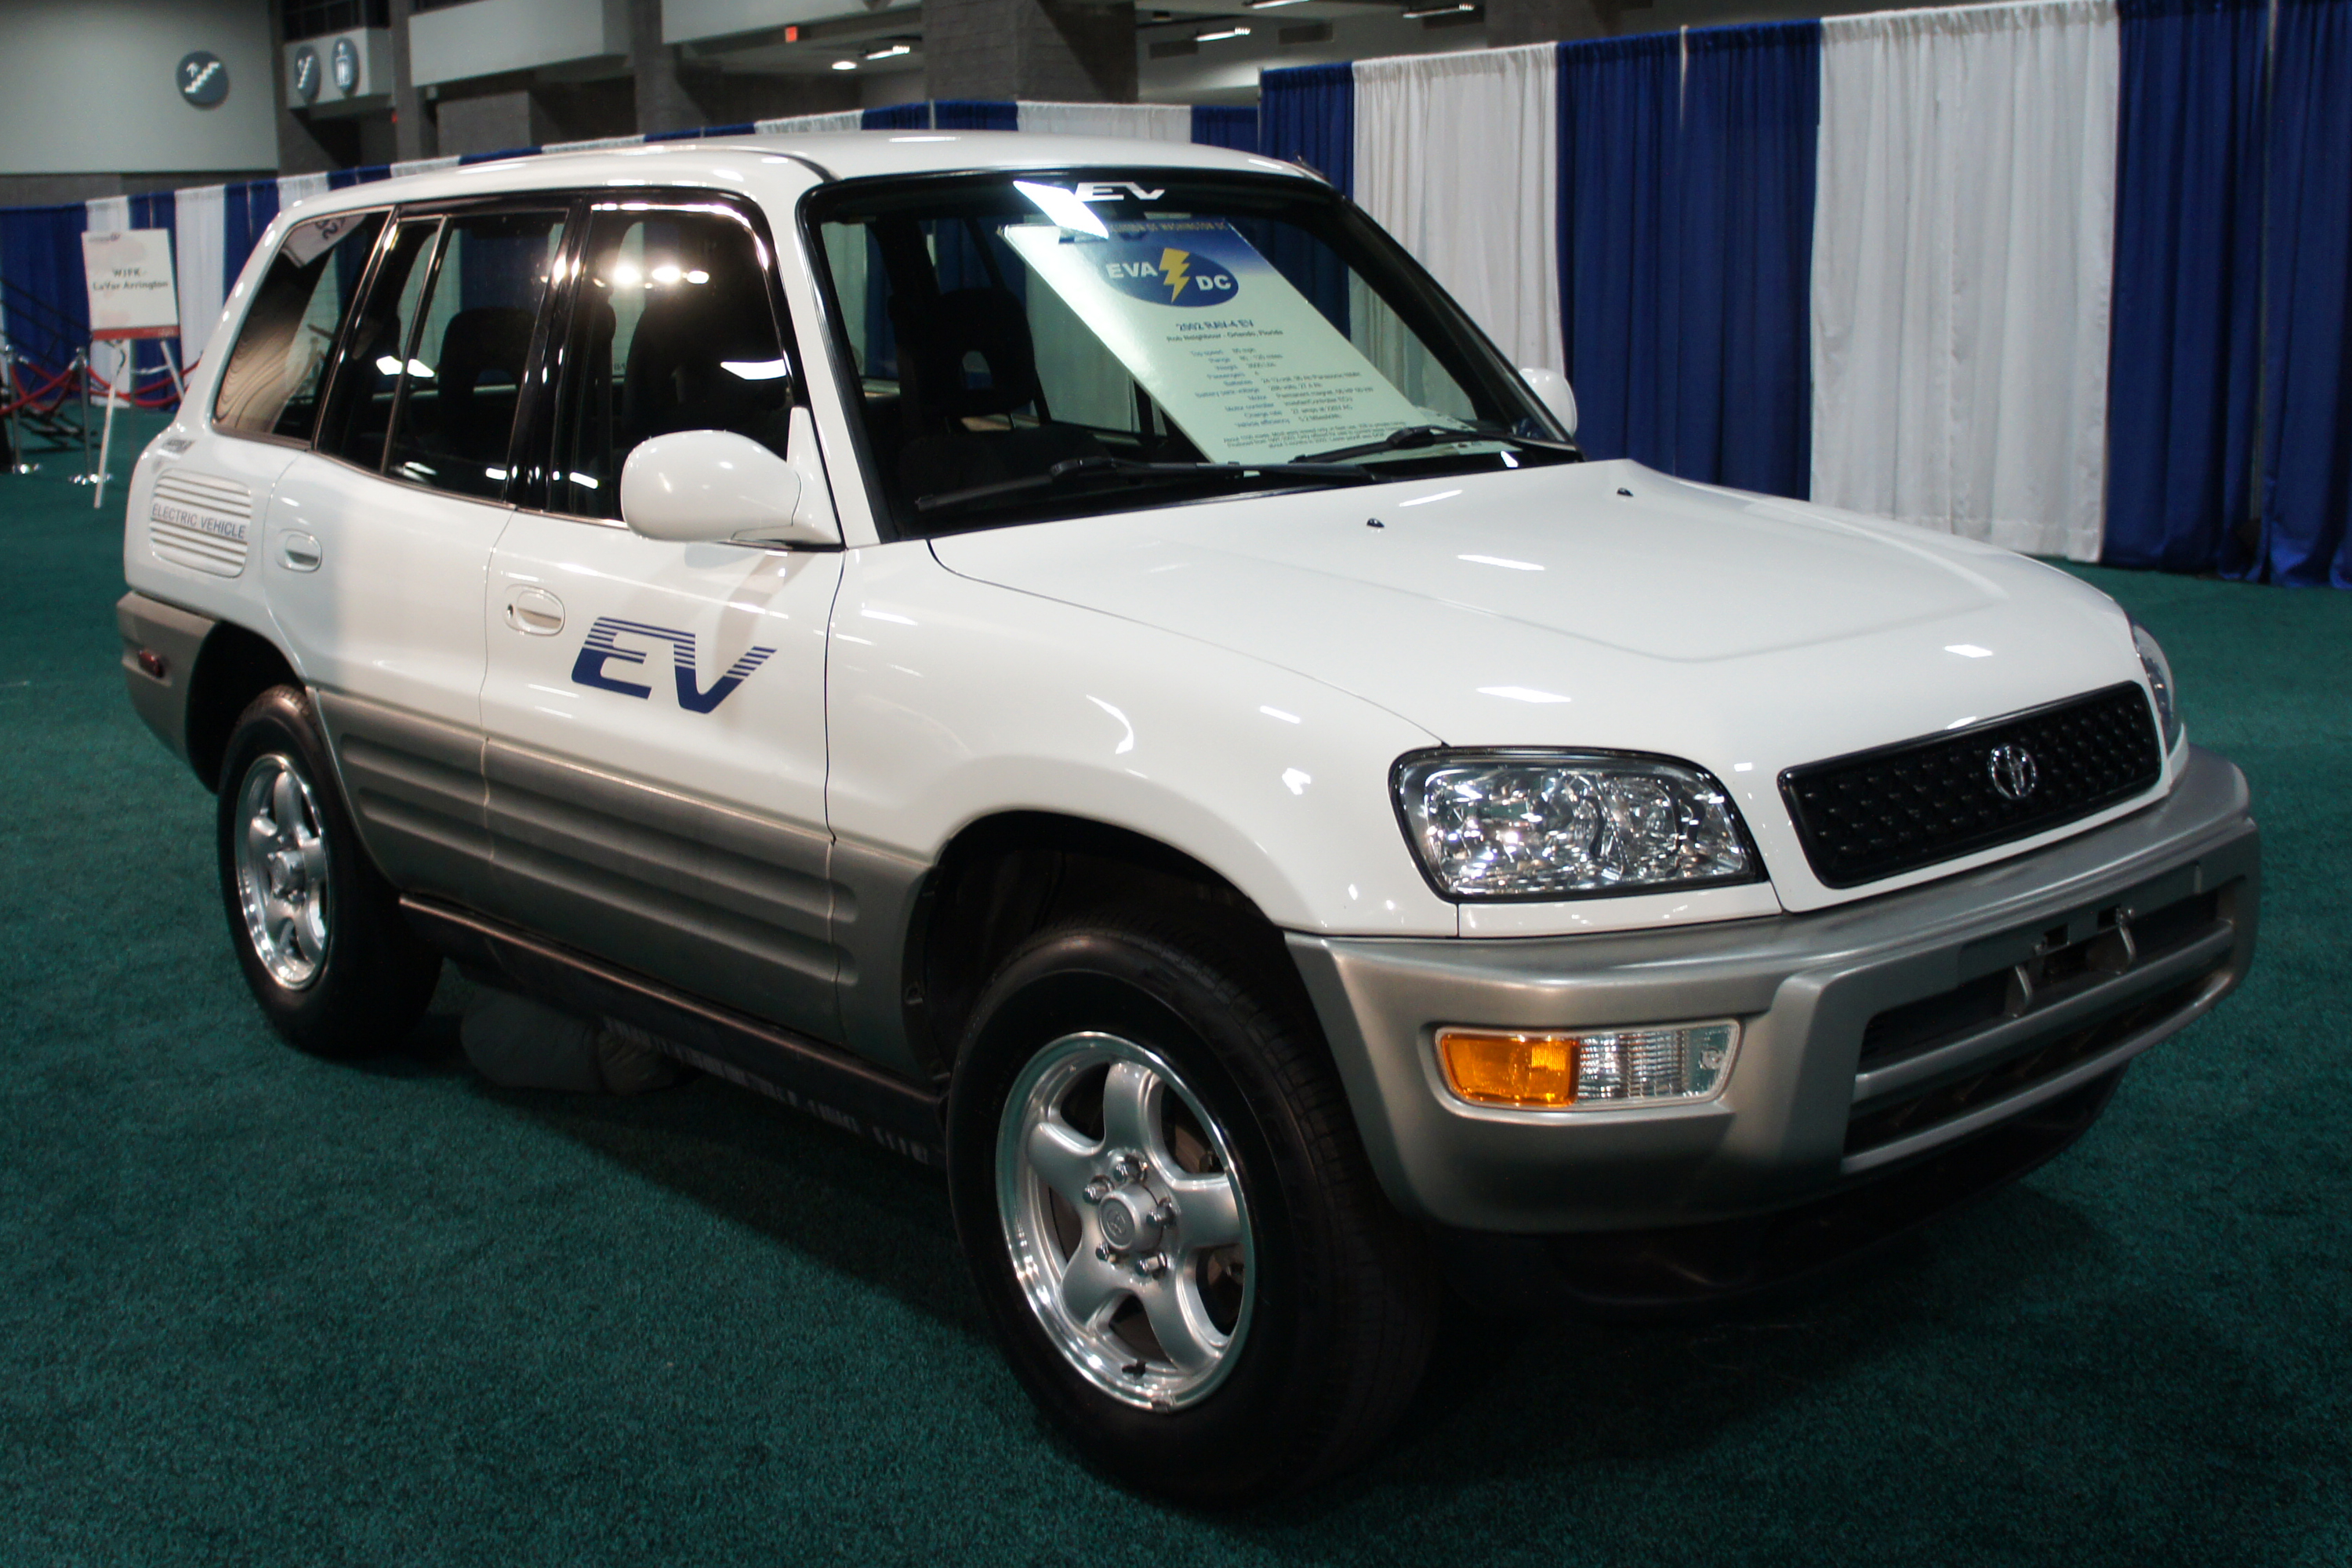 2012 Toyota RAV4 EV Information and photos ZombieDrive